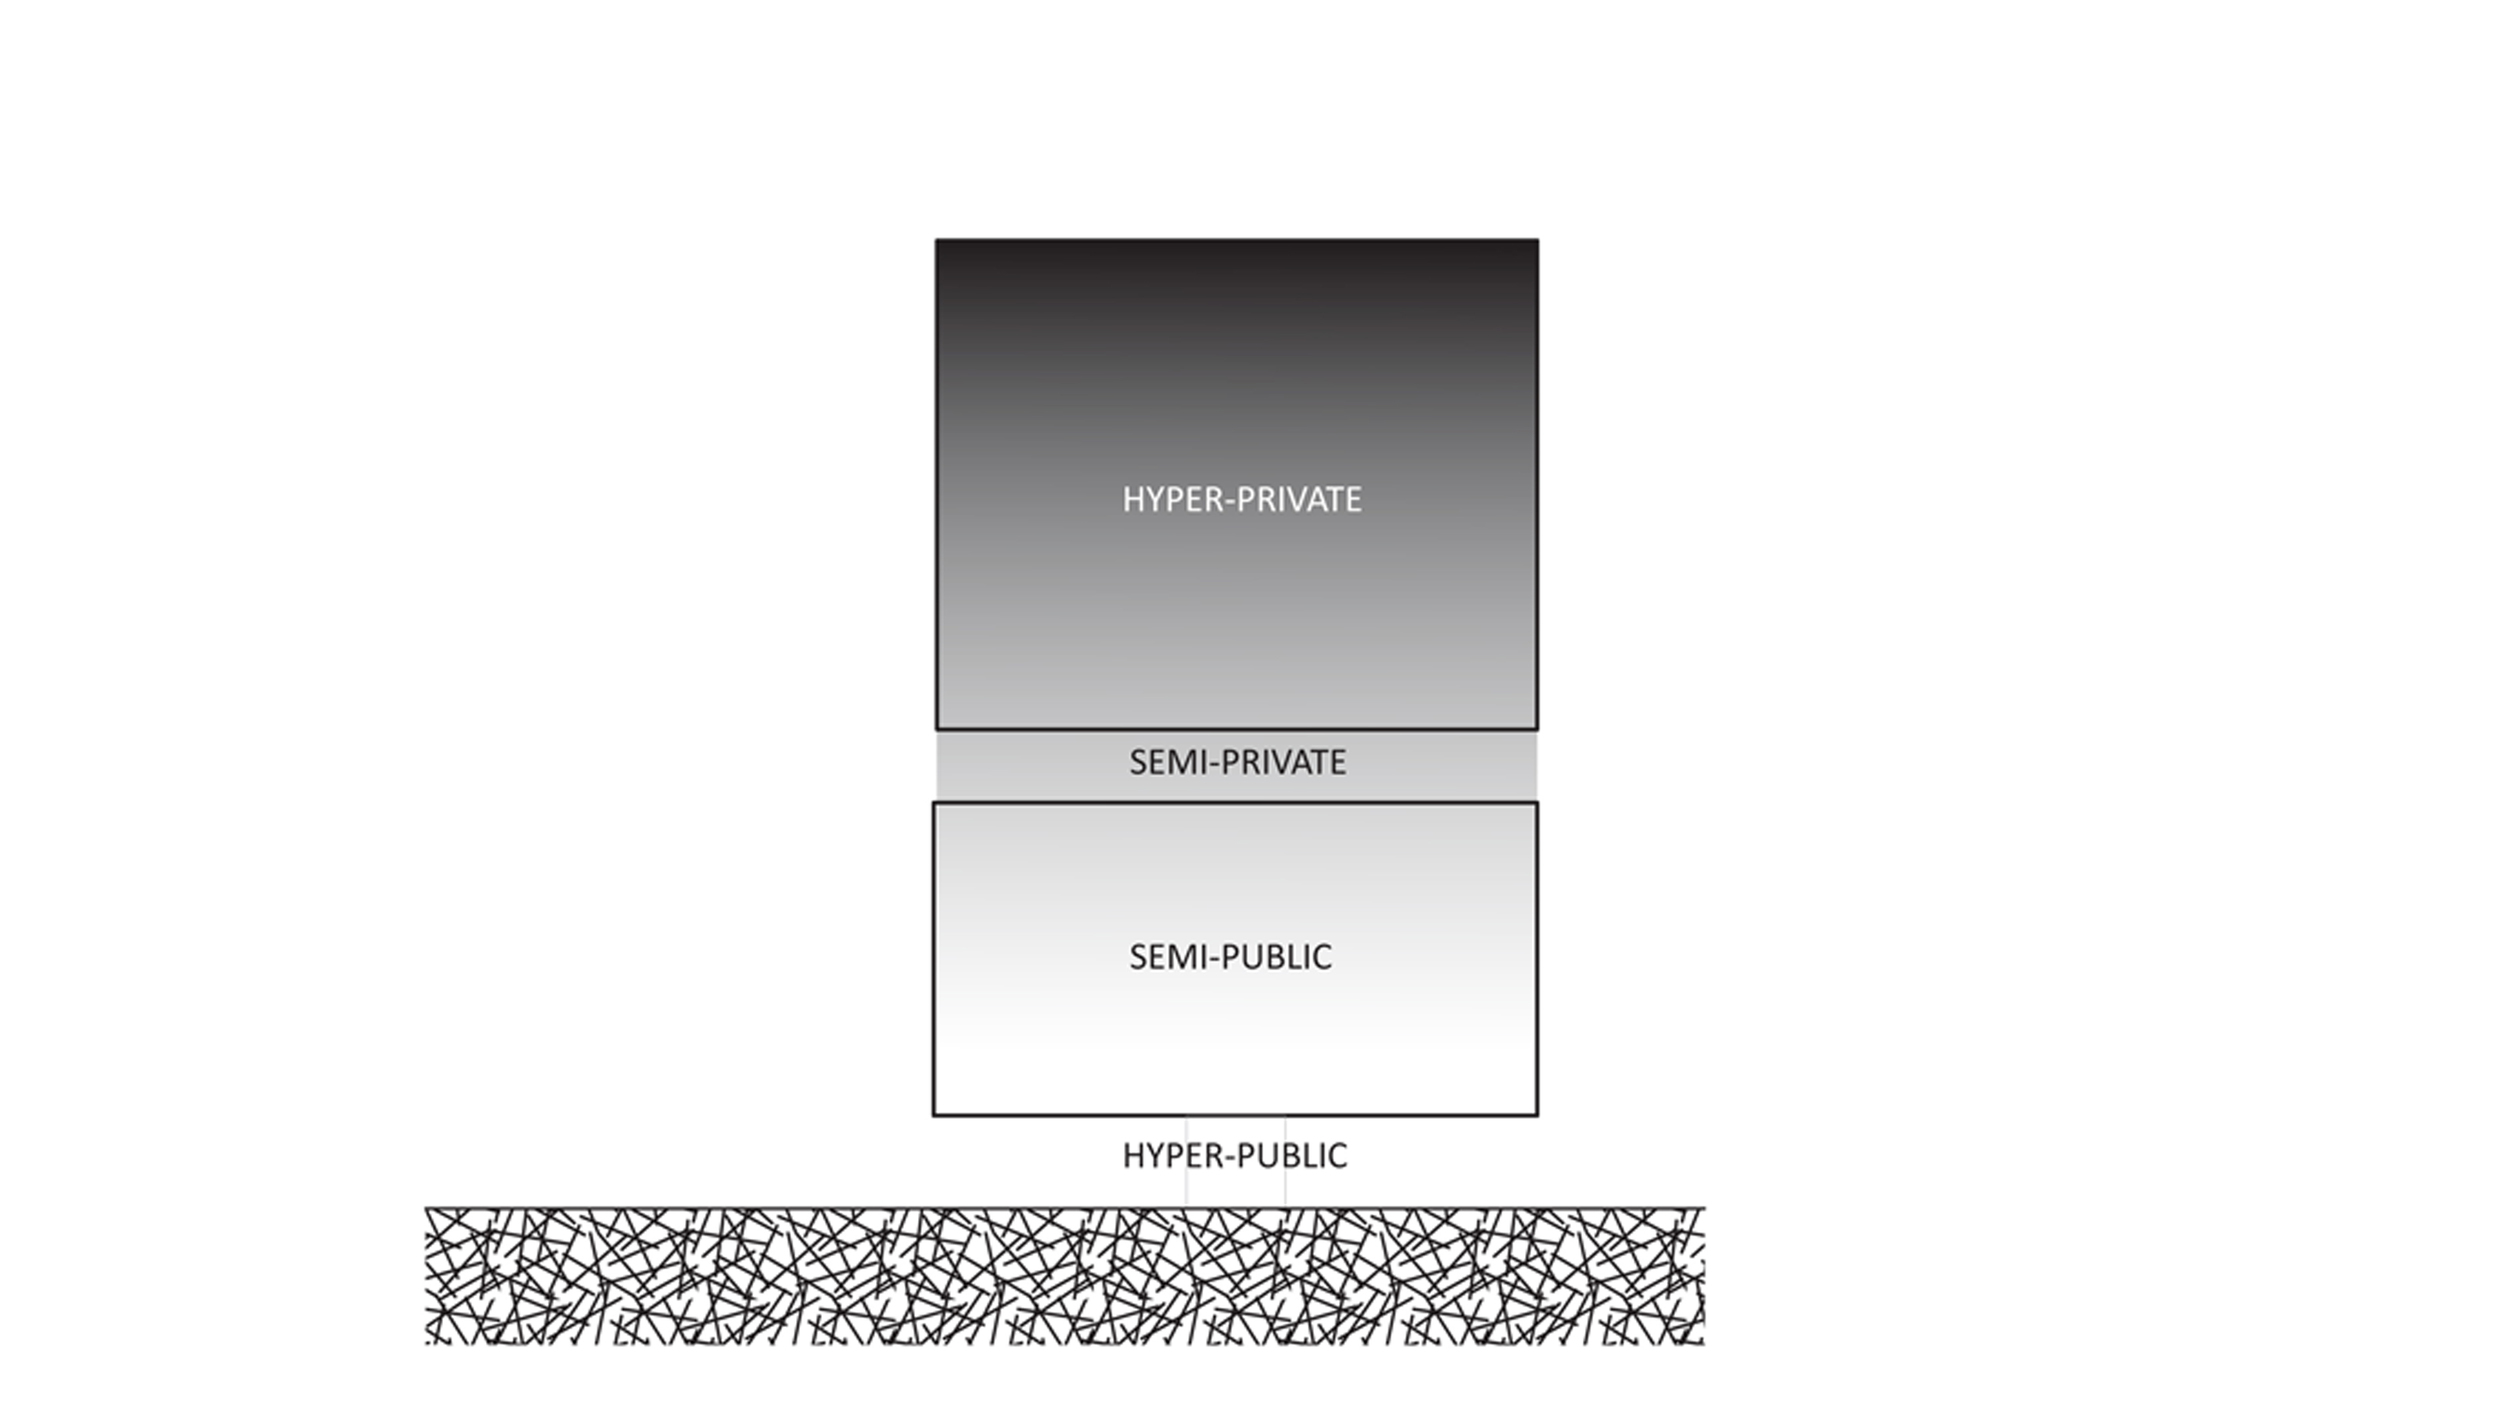 building organization diagram: public to private